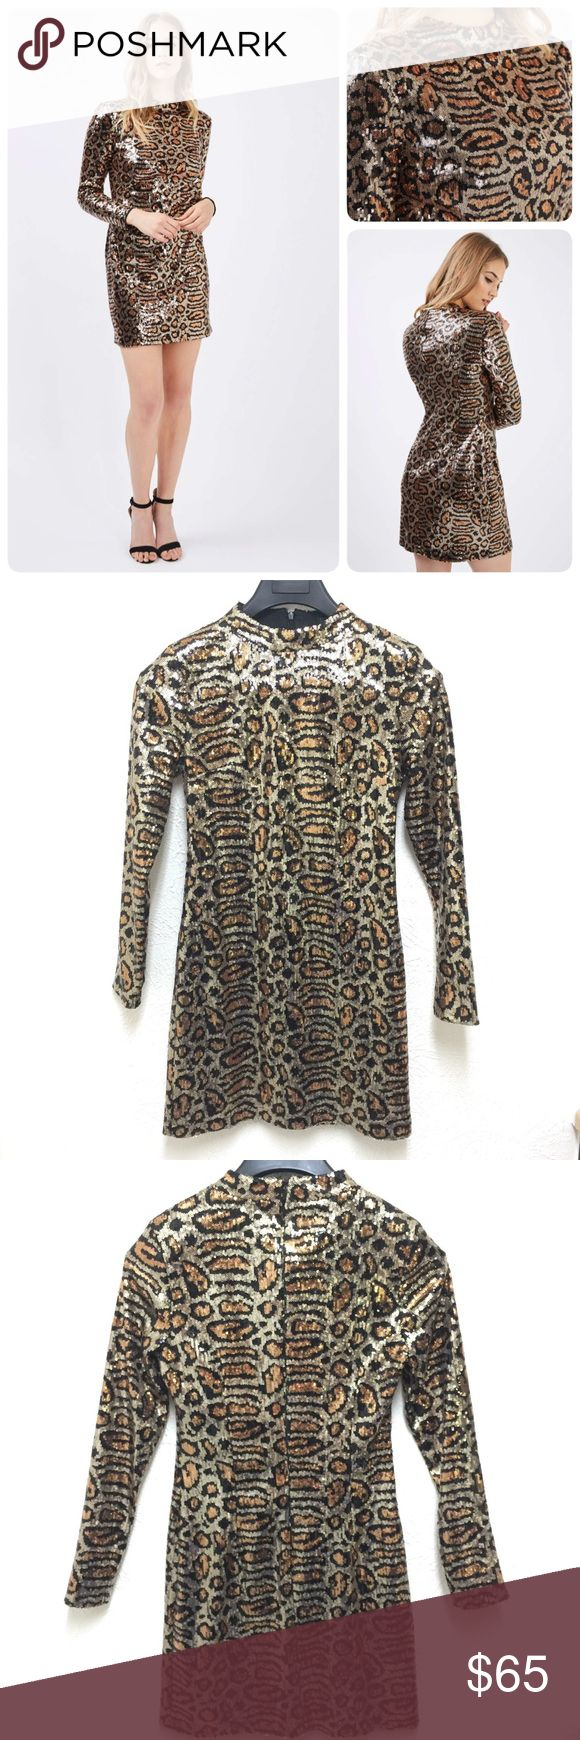 NWT Topshop Leopard Animal Print Sequin Dress US 6 Brand new with tag.  Women size 6US Retail: $110 plus tax  ❌NO Trade.  ❌Lowball Offer Will be IGNORED&BLOCKED.  ⚡️Serious Buyer ONLY⚡️NO DRAMA! ⭐️Same/next day shipping via USPS ⚠I video record all sales from packing to shipping so we are both protected ⚠ Topshop Dresses